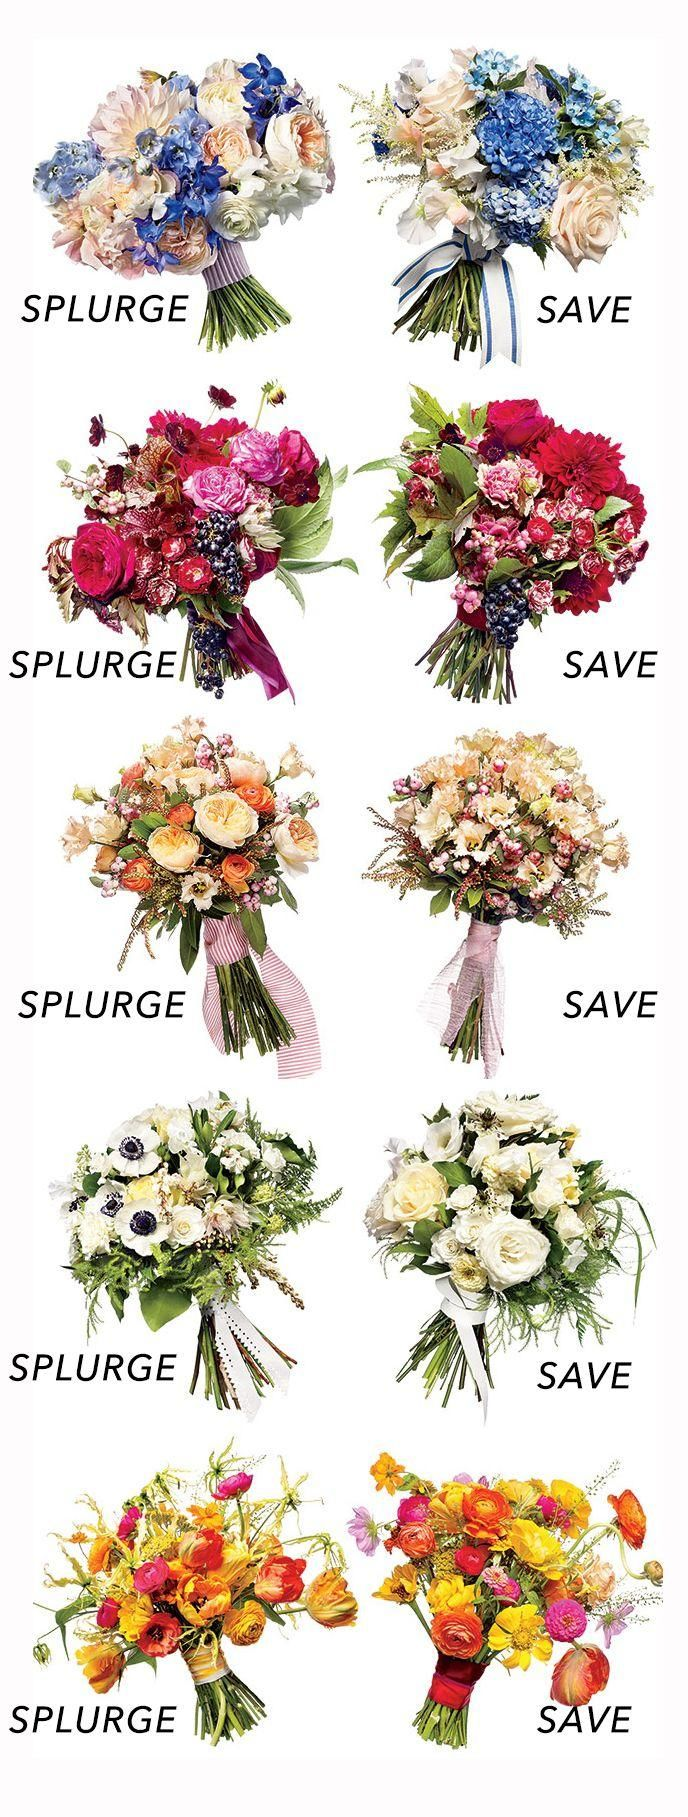 Save vs. Splurge Wedding Bouquets | Budgeting, Flower and Weddings